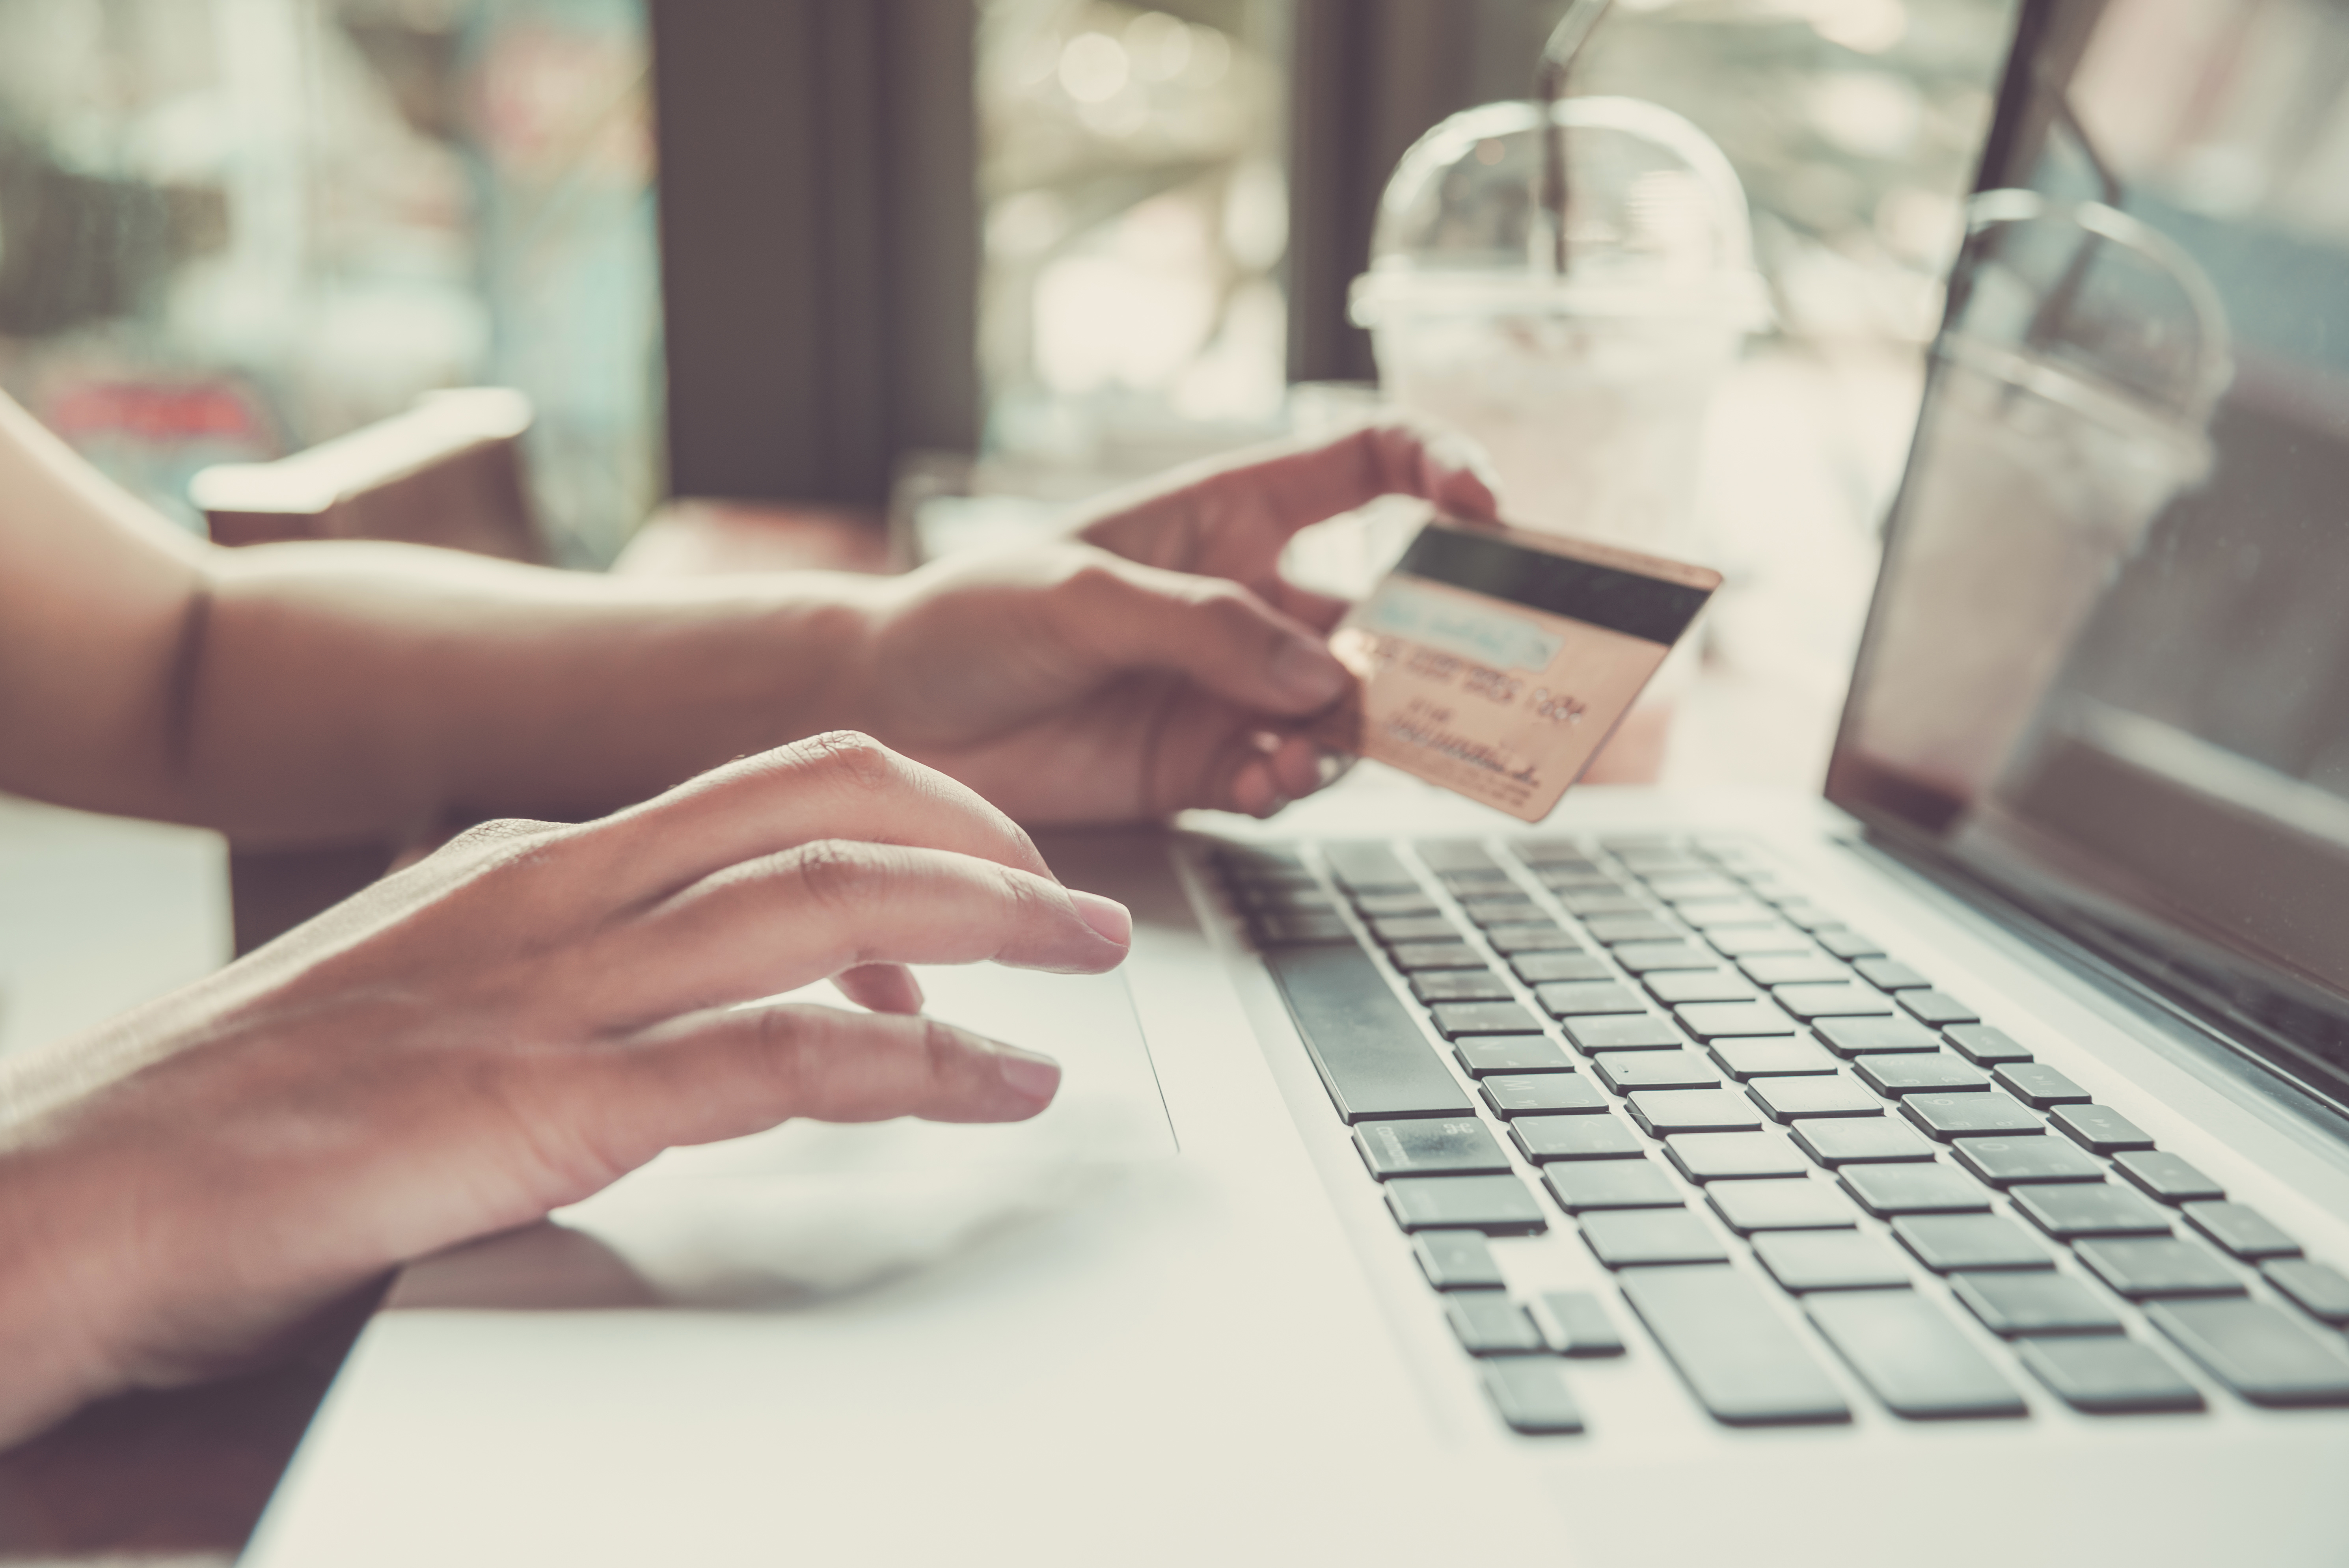 shopping online on computer at coffee shop. (payment concept).